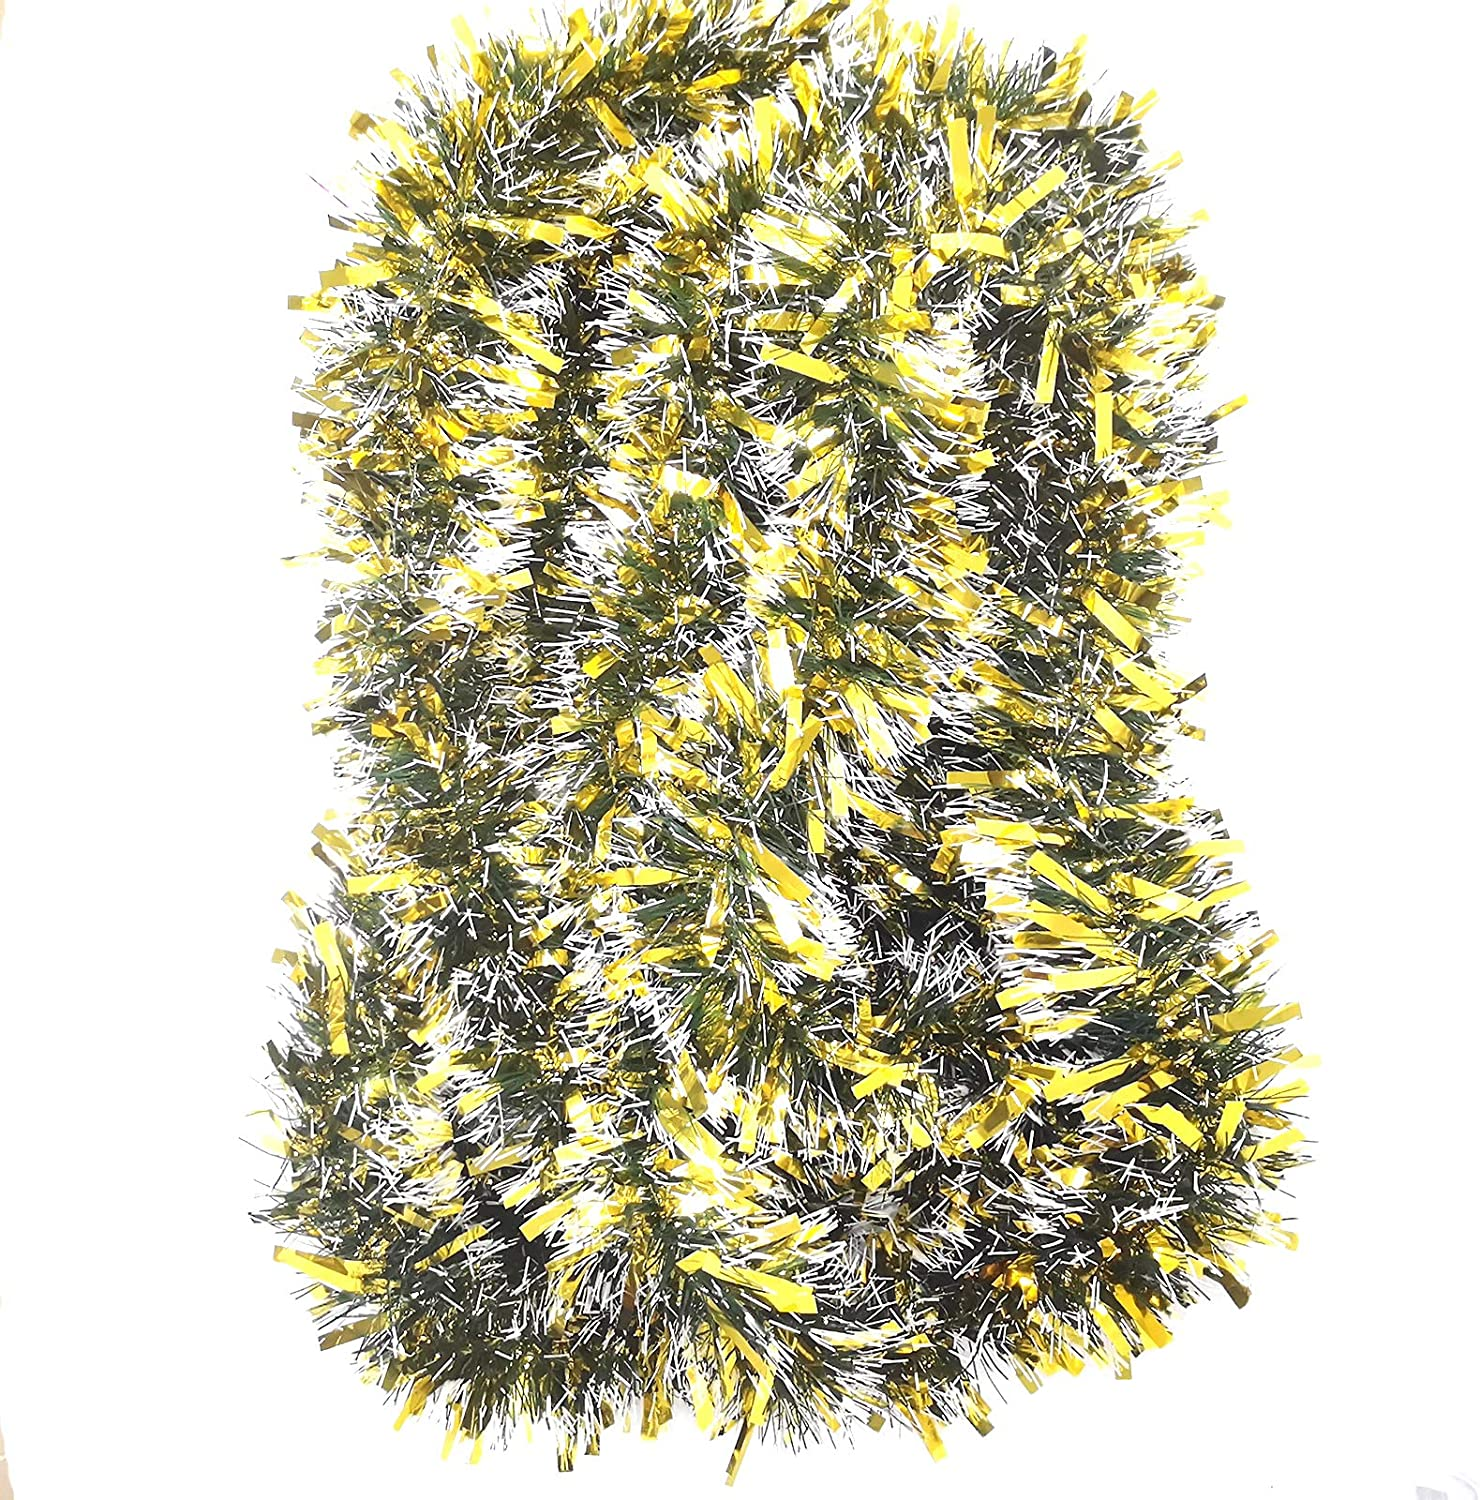 LeleCAT Gold Tinsel Garland for Christmas Decorations Holiday Decor for Outdoor or Indoor Use - Premium Quality Home Garden Tinsel Garland, or Wedding Party Decorations 19 Ft